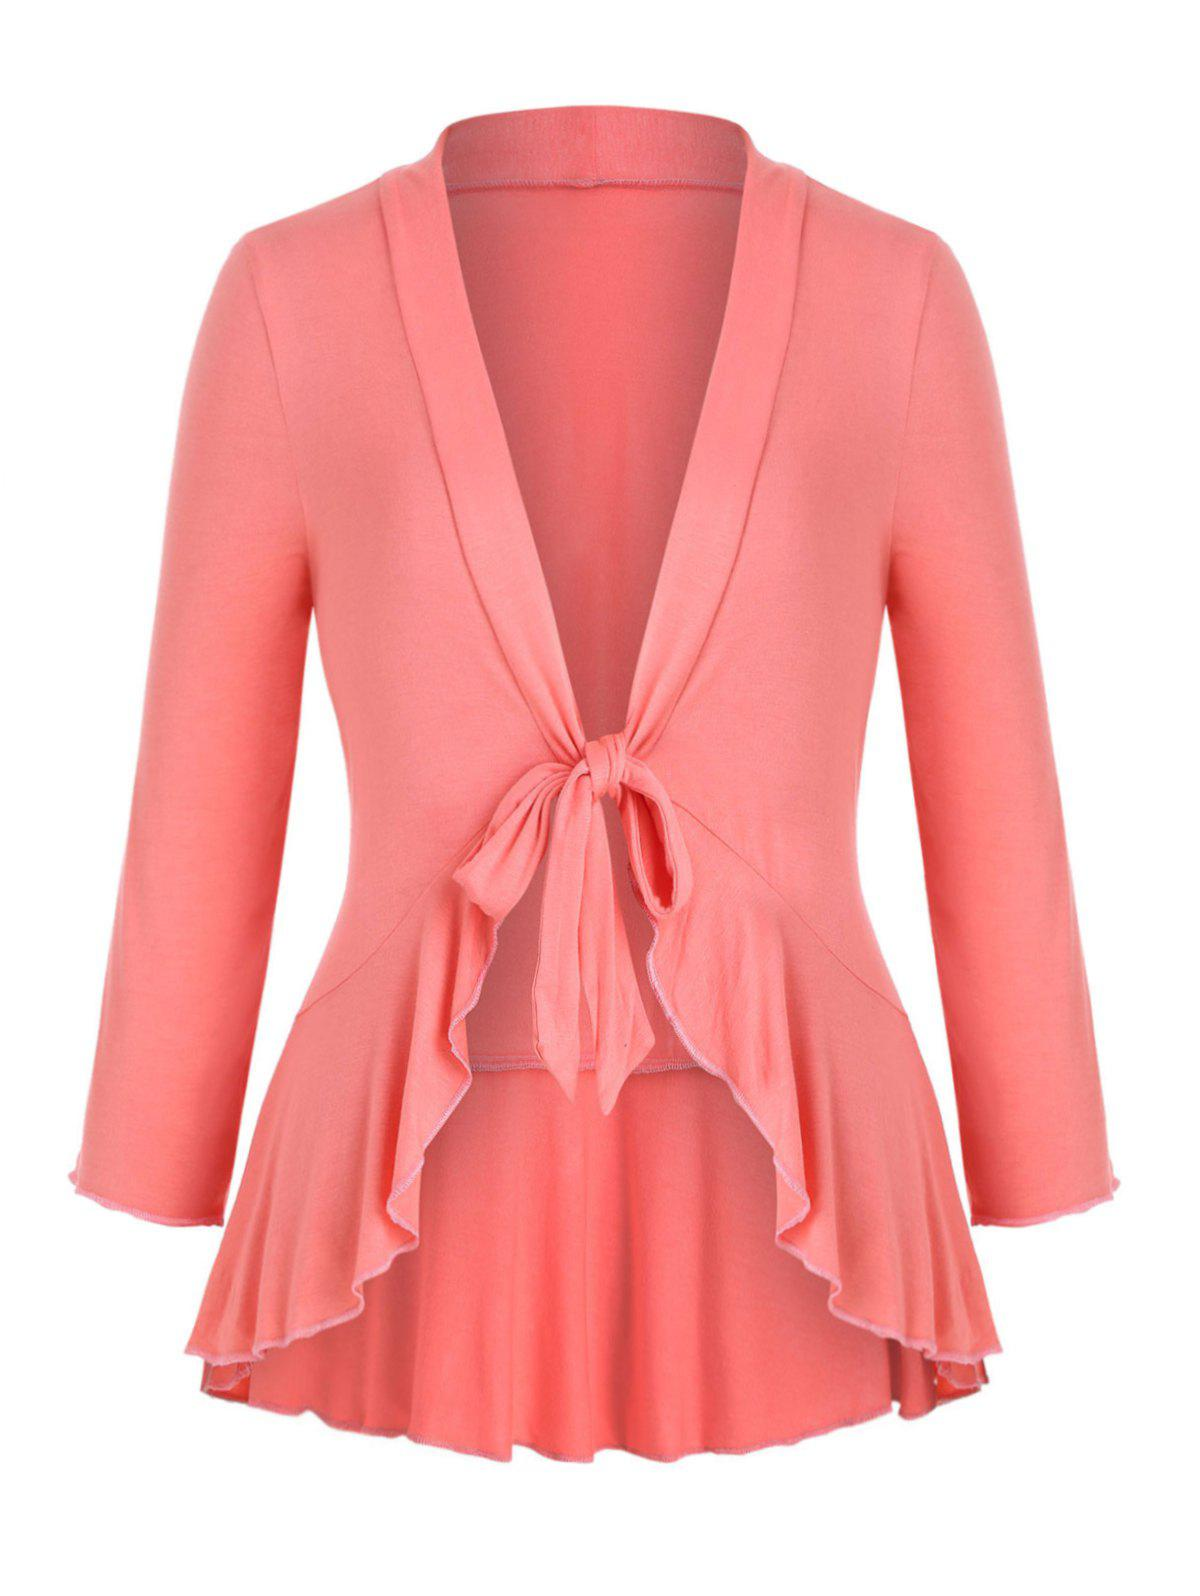 Knotted Solid Flounced Hem Plus Size Top - LIGHT PINK 3X